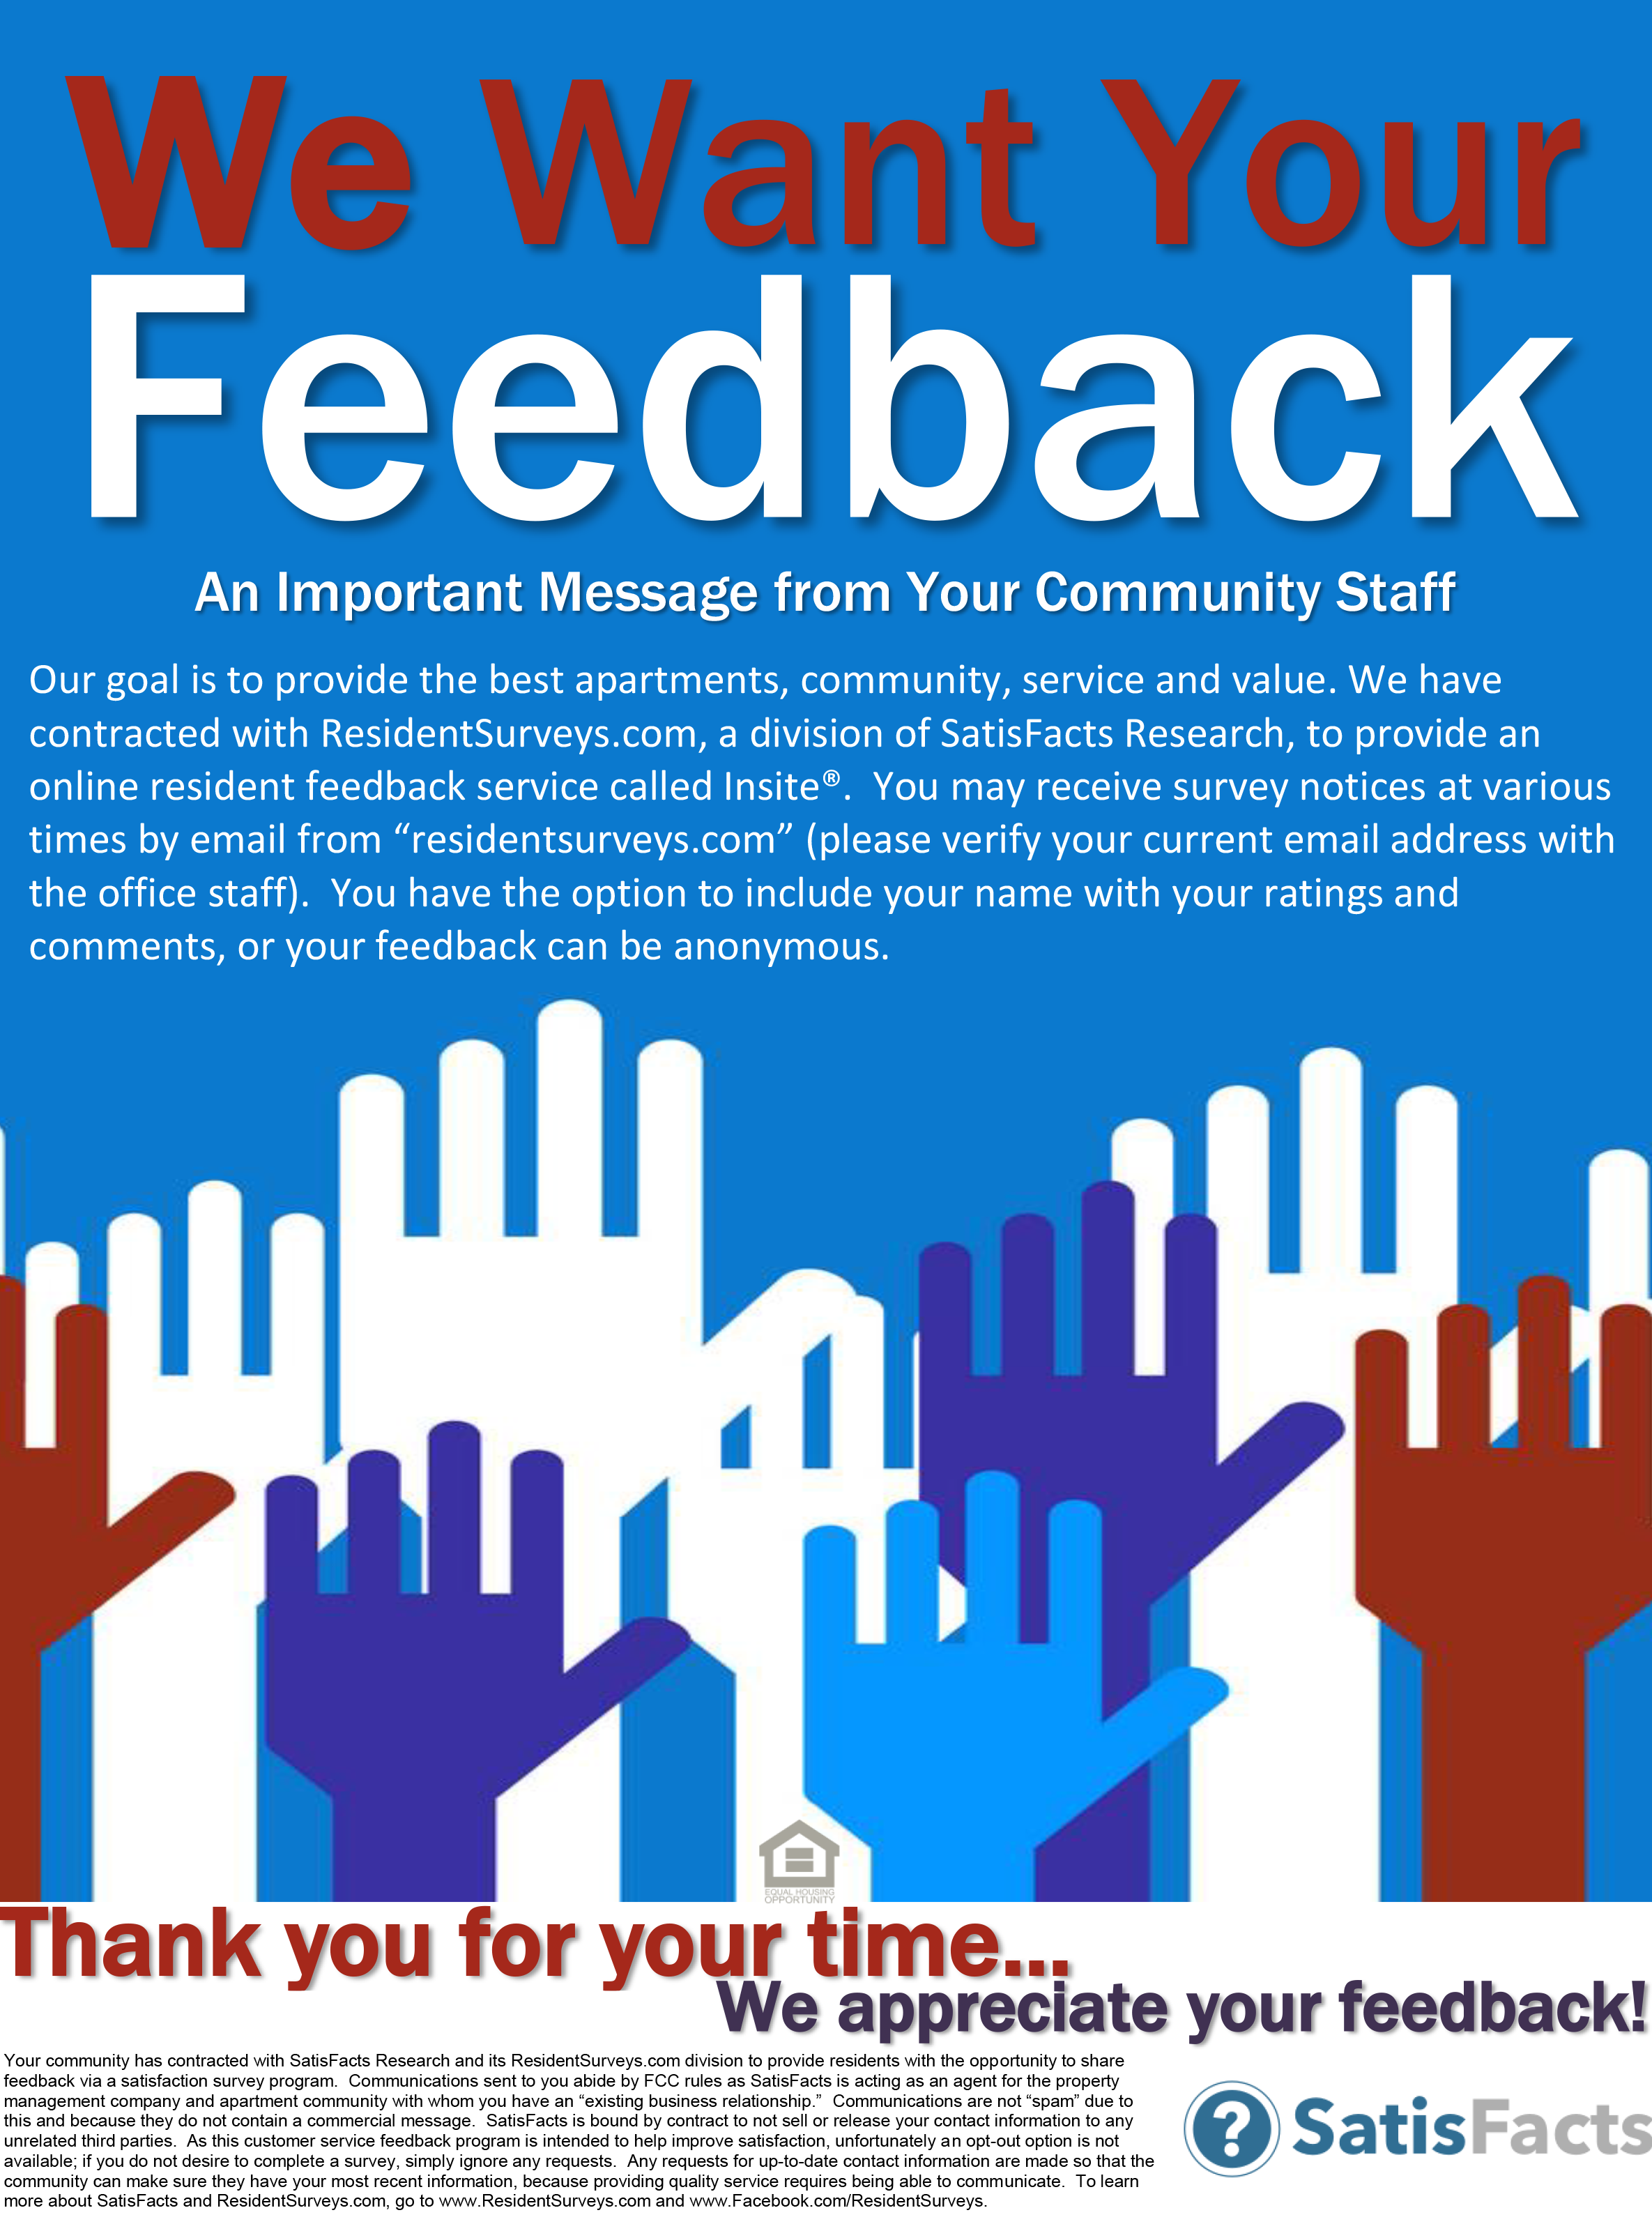 satisfacts poster we value your feedback